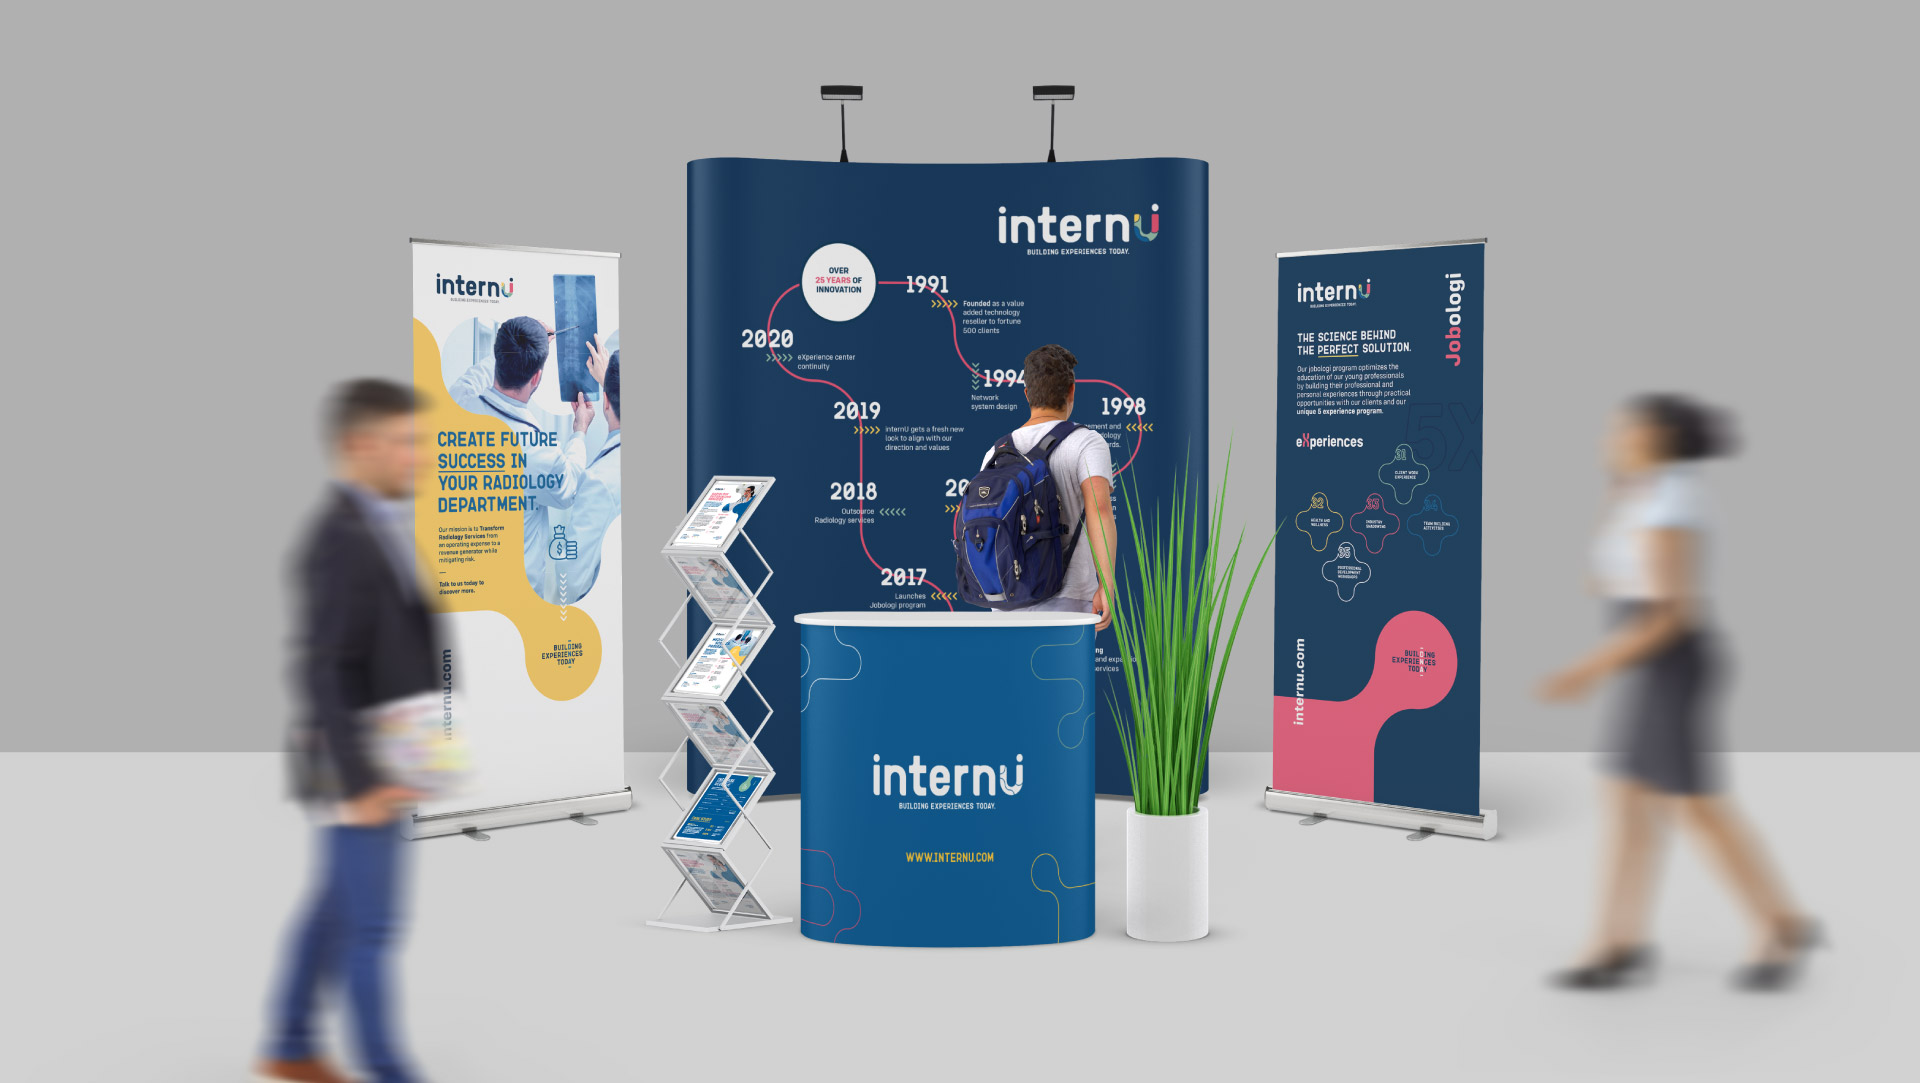 internU recruitment branding applied to their event and exhibition stand design.